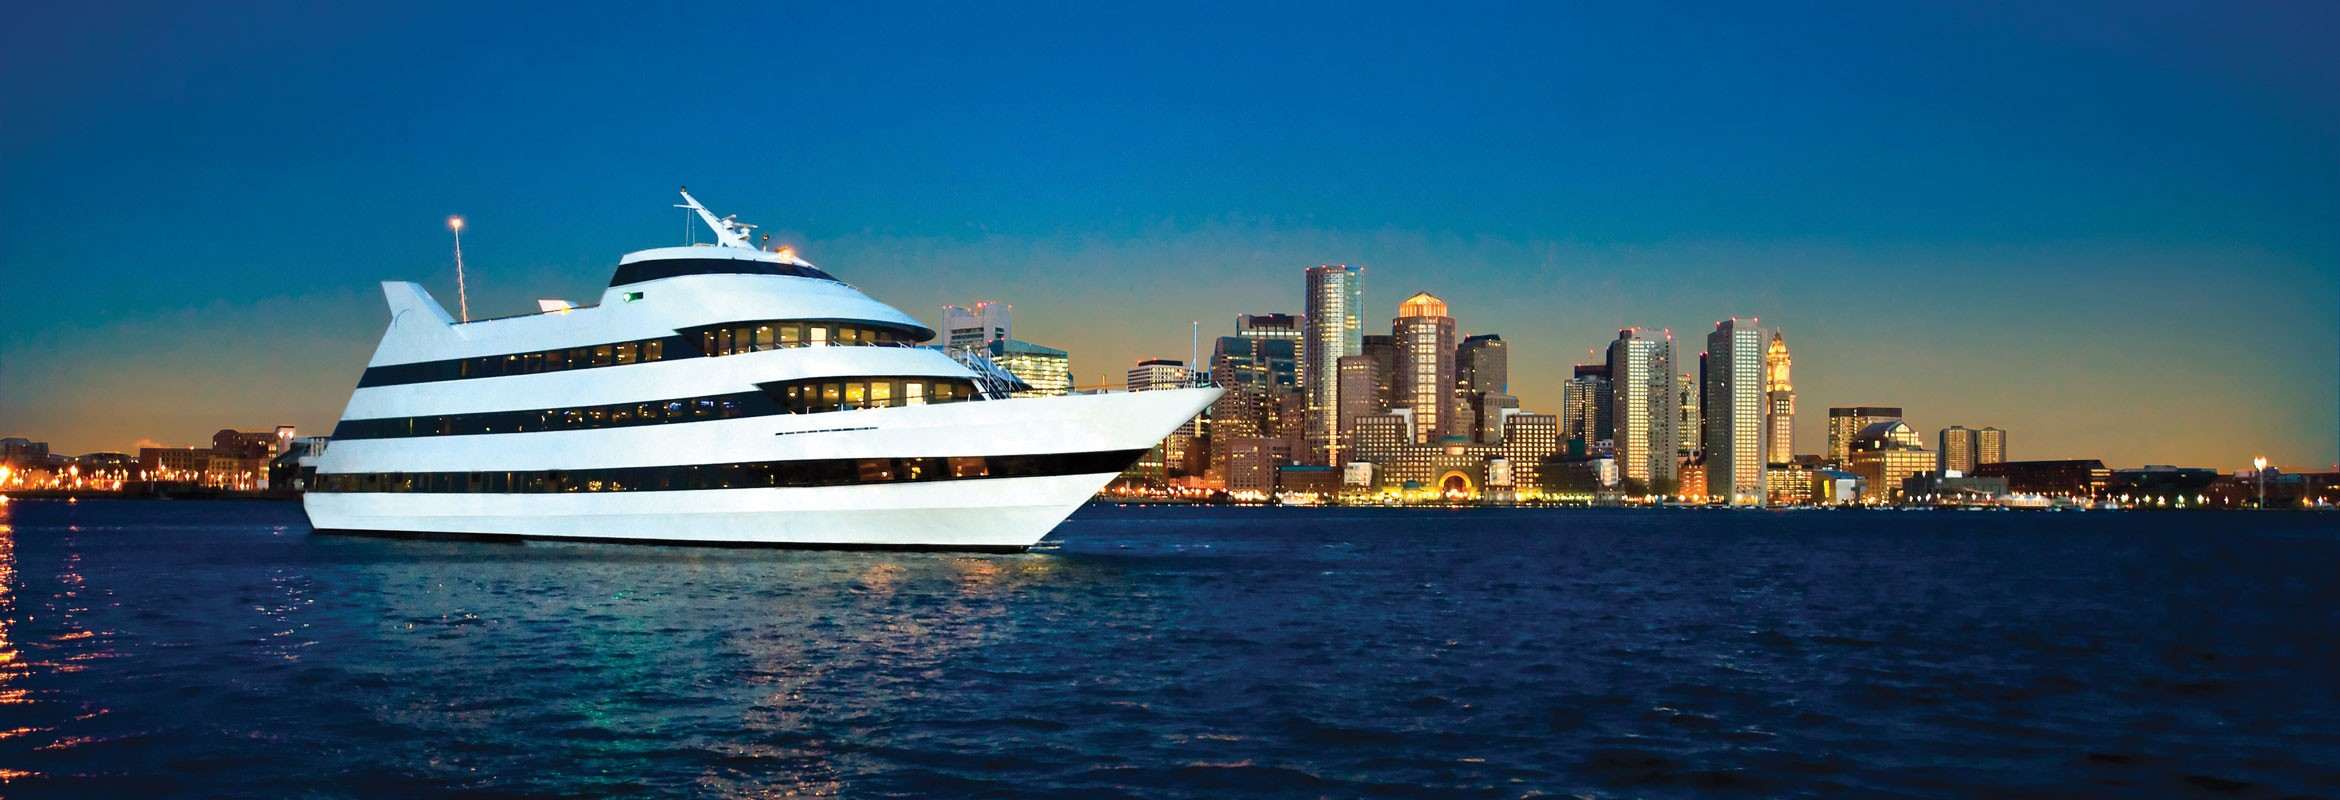 Harbor Cruise Party